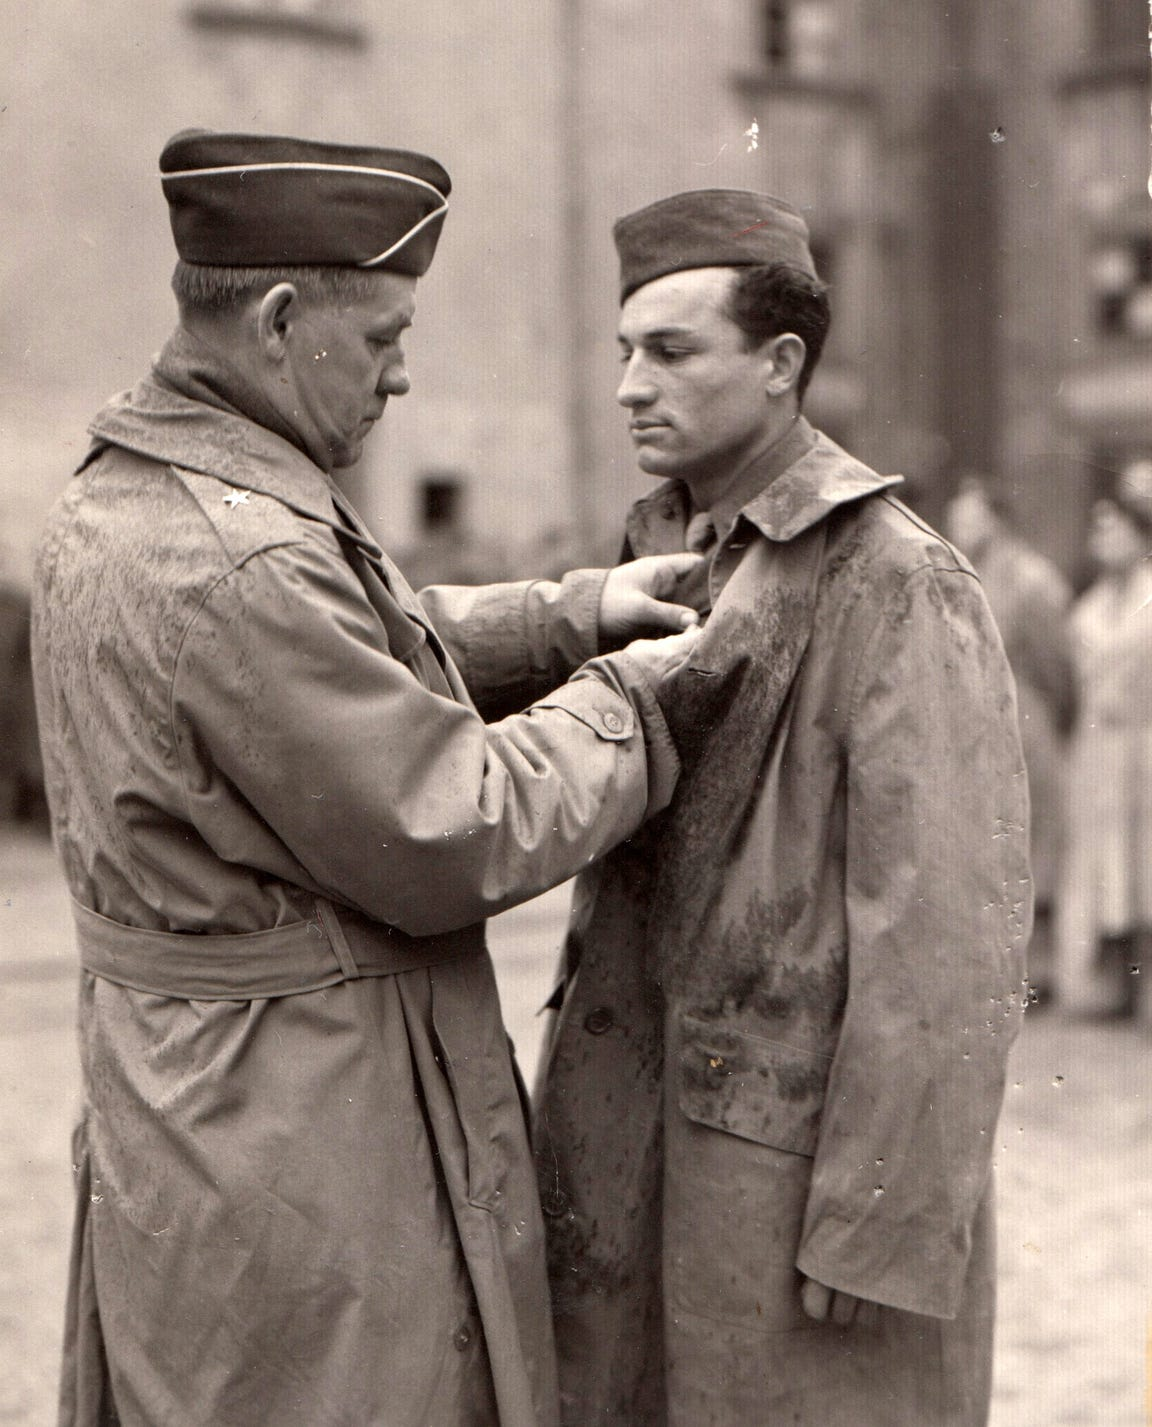 Airman Joe Campos (right) of the U.S. Army/Air Force receives a medal in Europe during World War II.